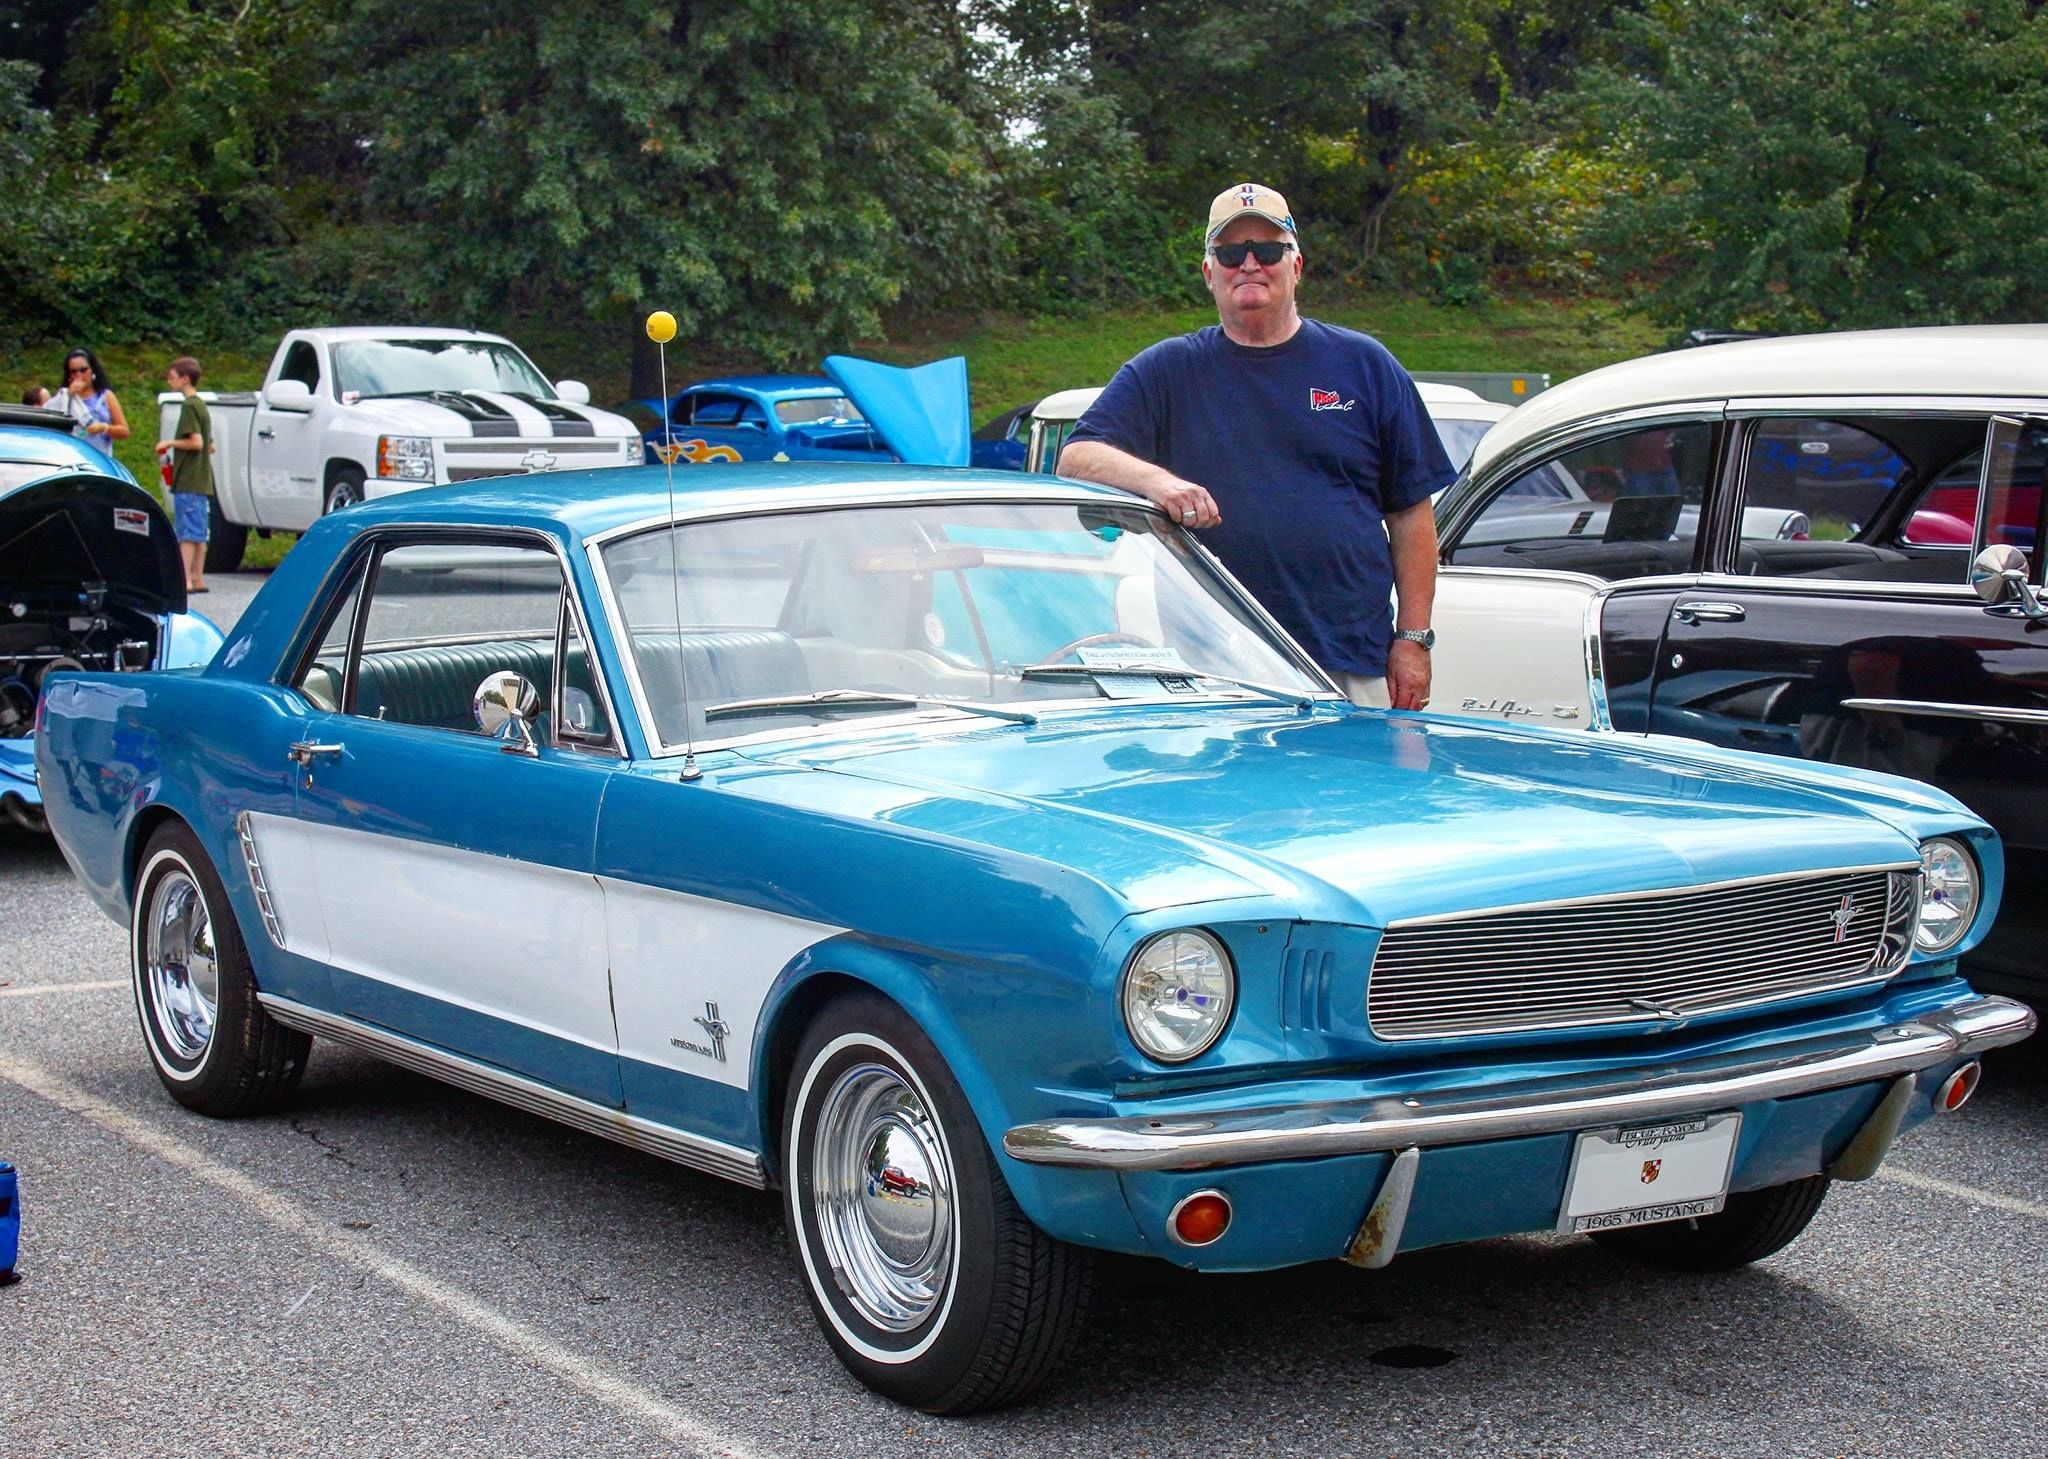 Robert And His 1965 Mustang Coupe